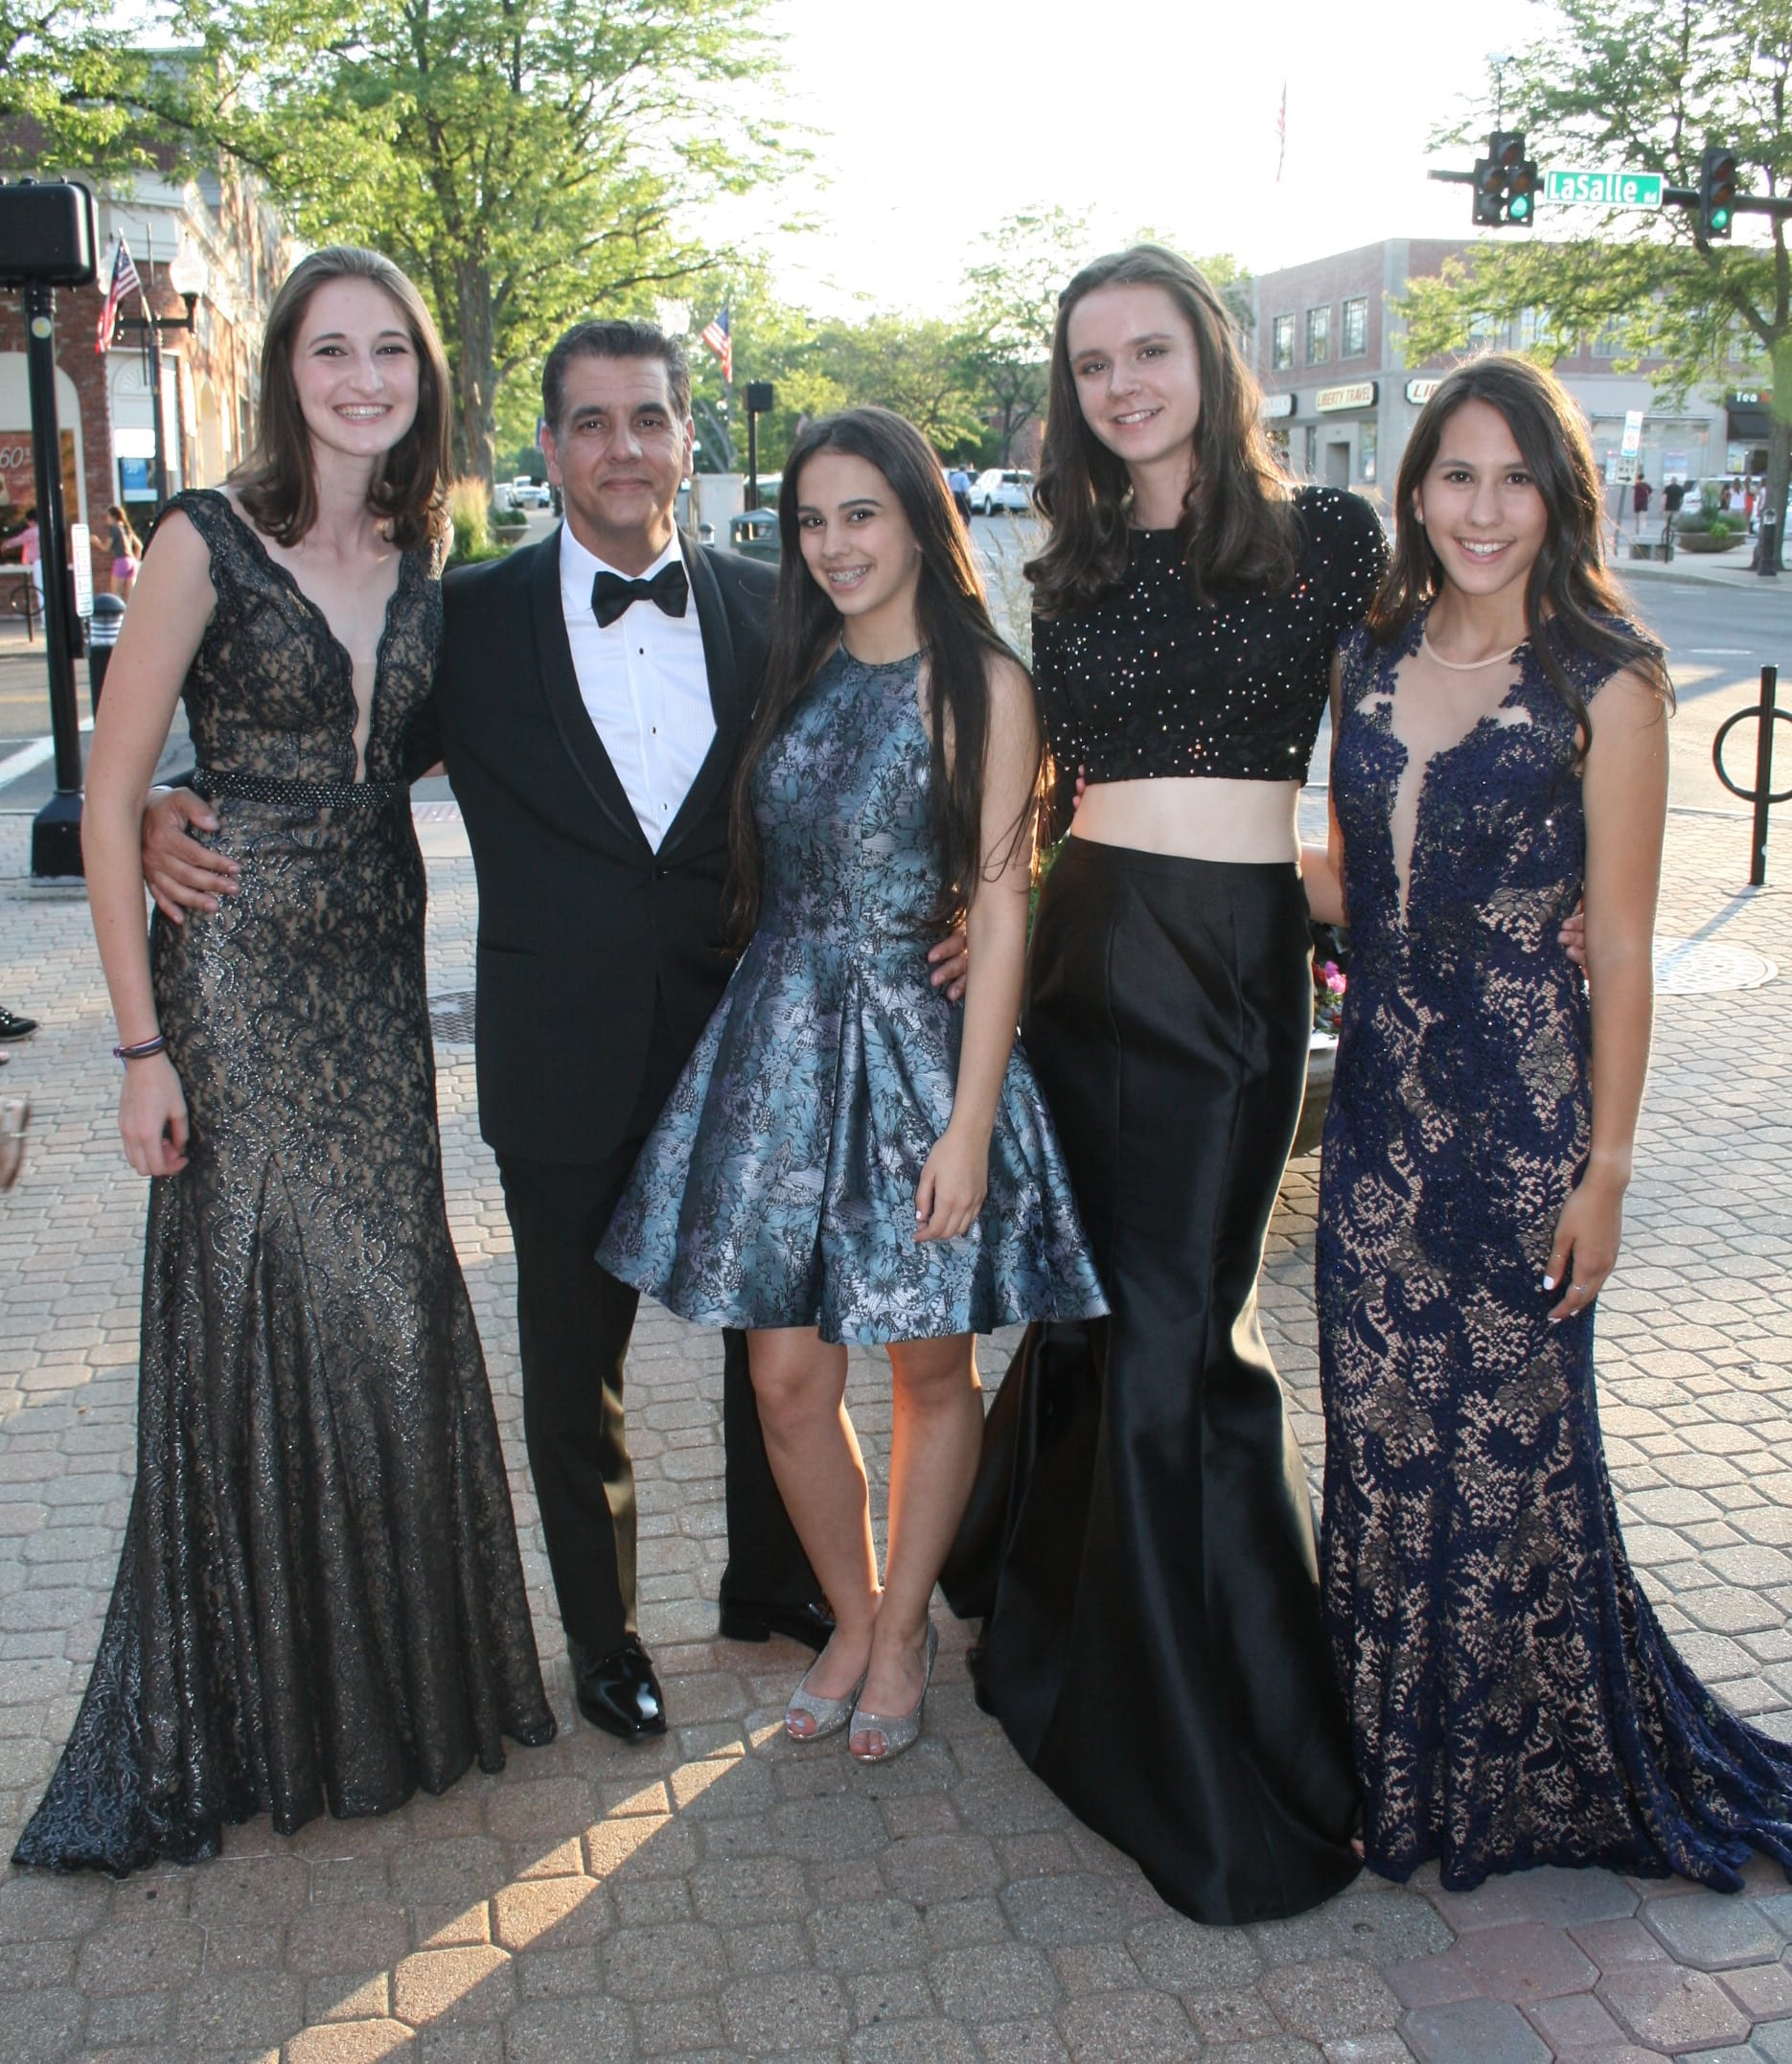 """Ody Sosa, owner of Argelia Novias Bridal, with his """"models"""" at the Fashion Show in West Hartford Center on the Town of West Hartford Showmobile stage on June 23, 2016. Photo credit: Joy Taylor"""